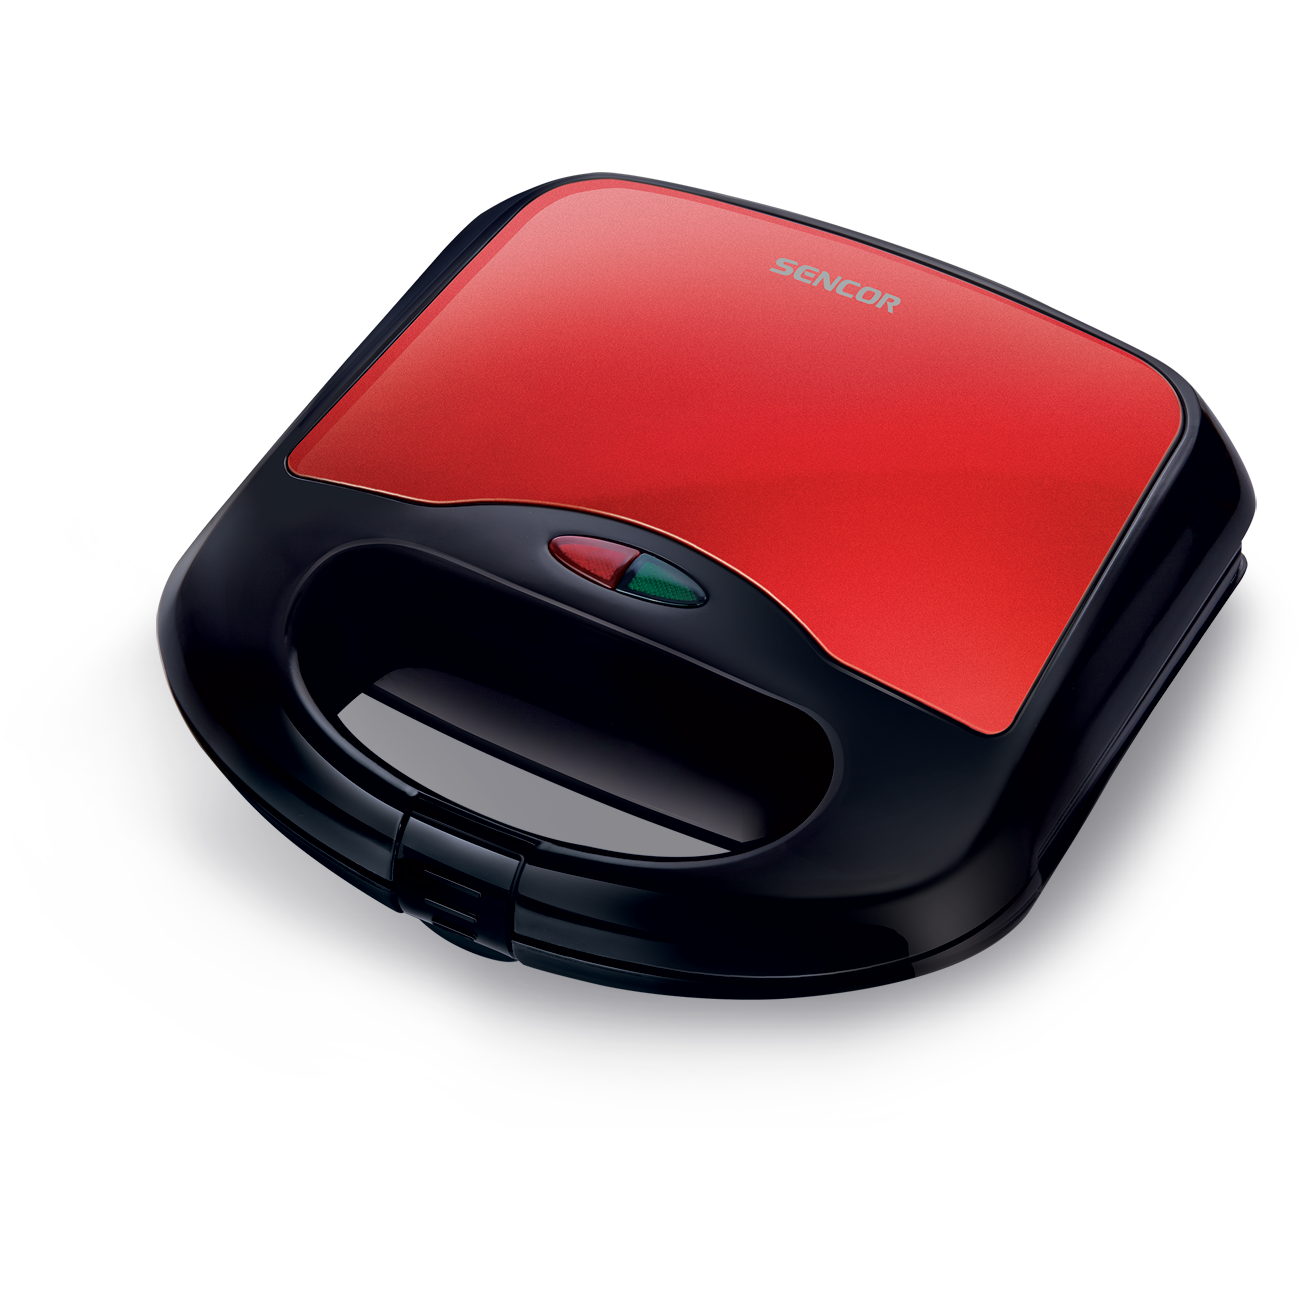 SSM 4204RD Sandwich Maker